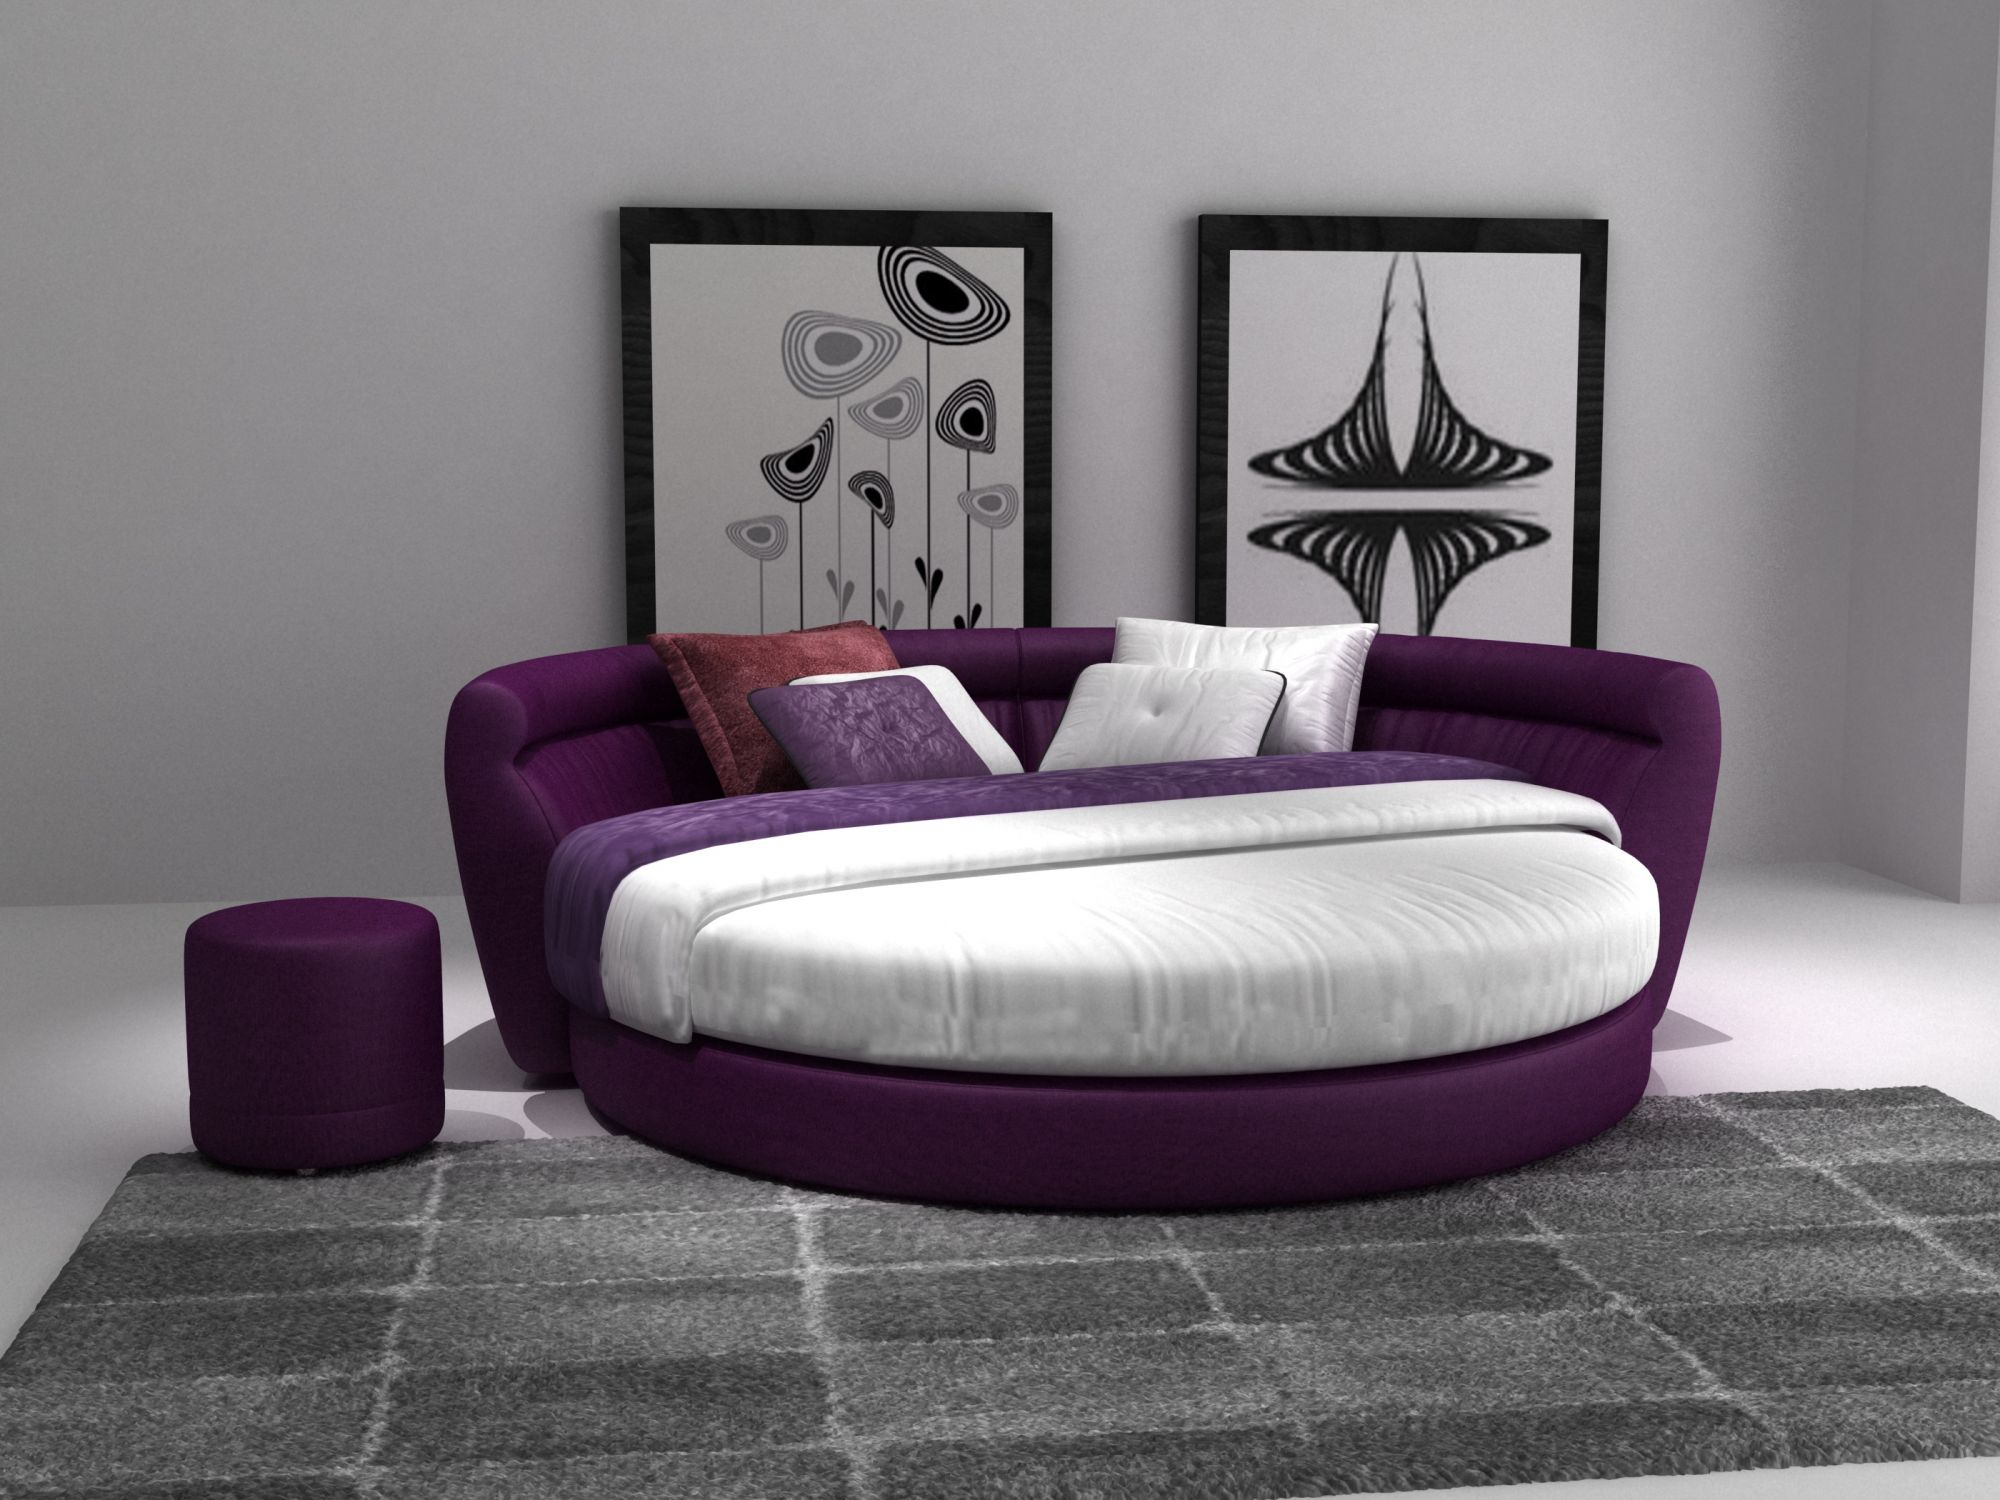 avis lit rond notre guide d achat. Black Bedroom Furniture Sets. Home Design Ideas